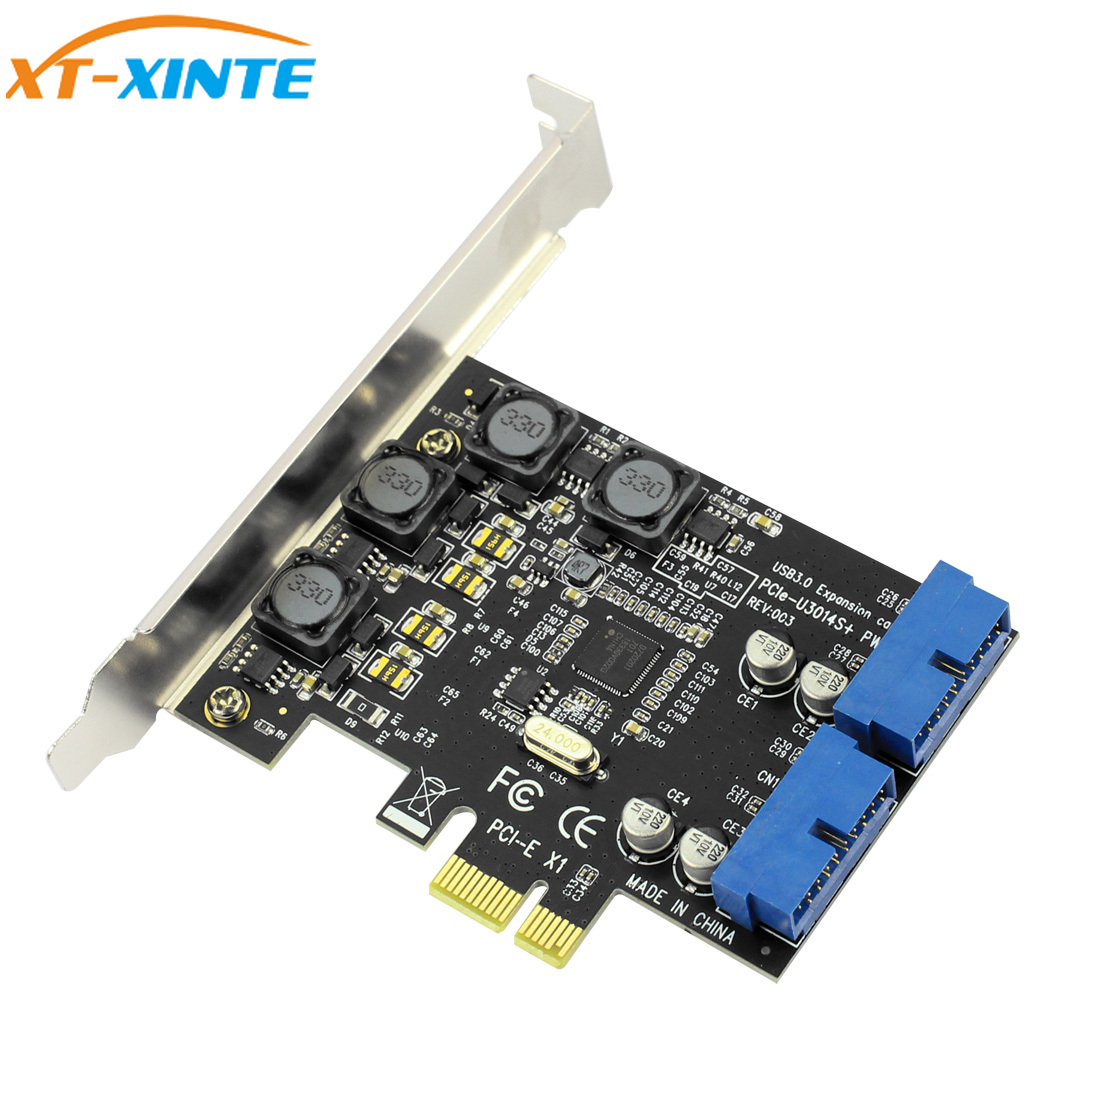 USB3.0 PCI-E Express X1 Expansion Card Front 3.0 HUB 19PIN Interface Adapter